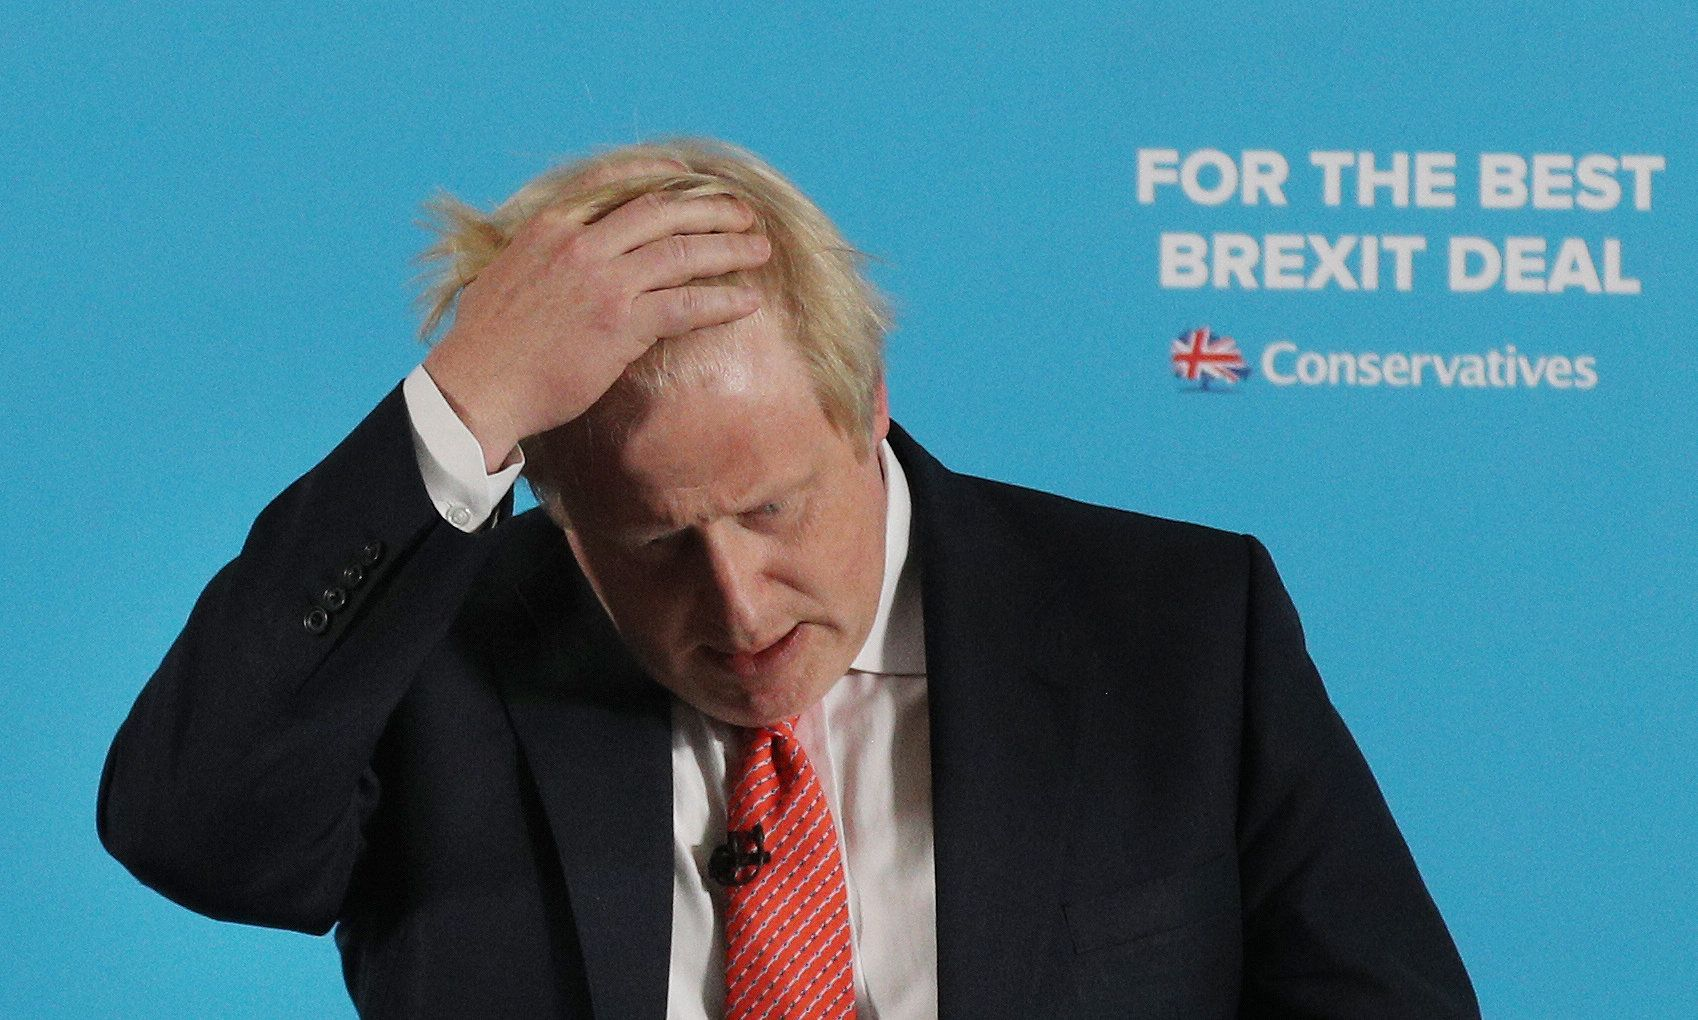 Boris Johnson quits as UK Foreign Secretary